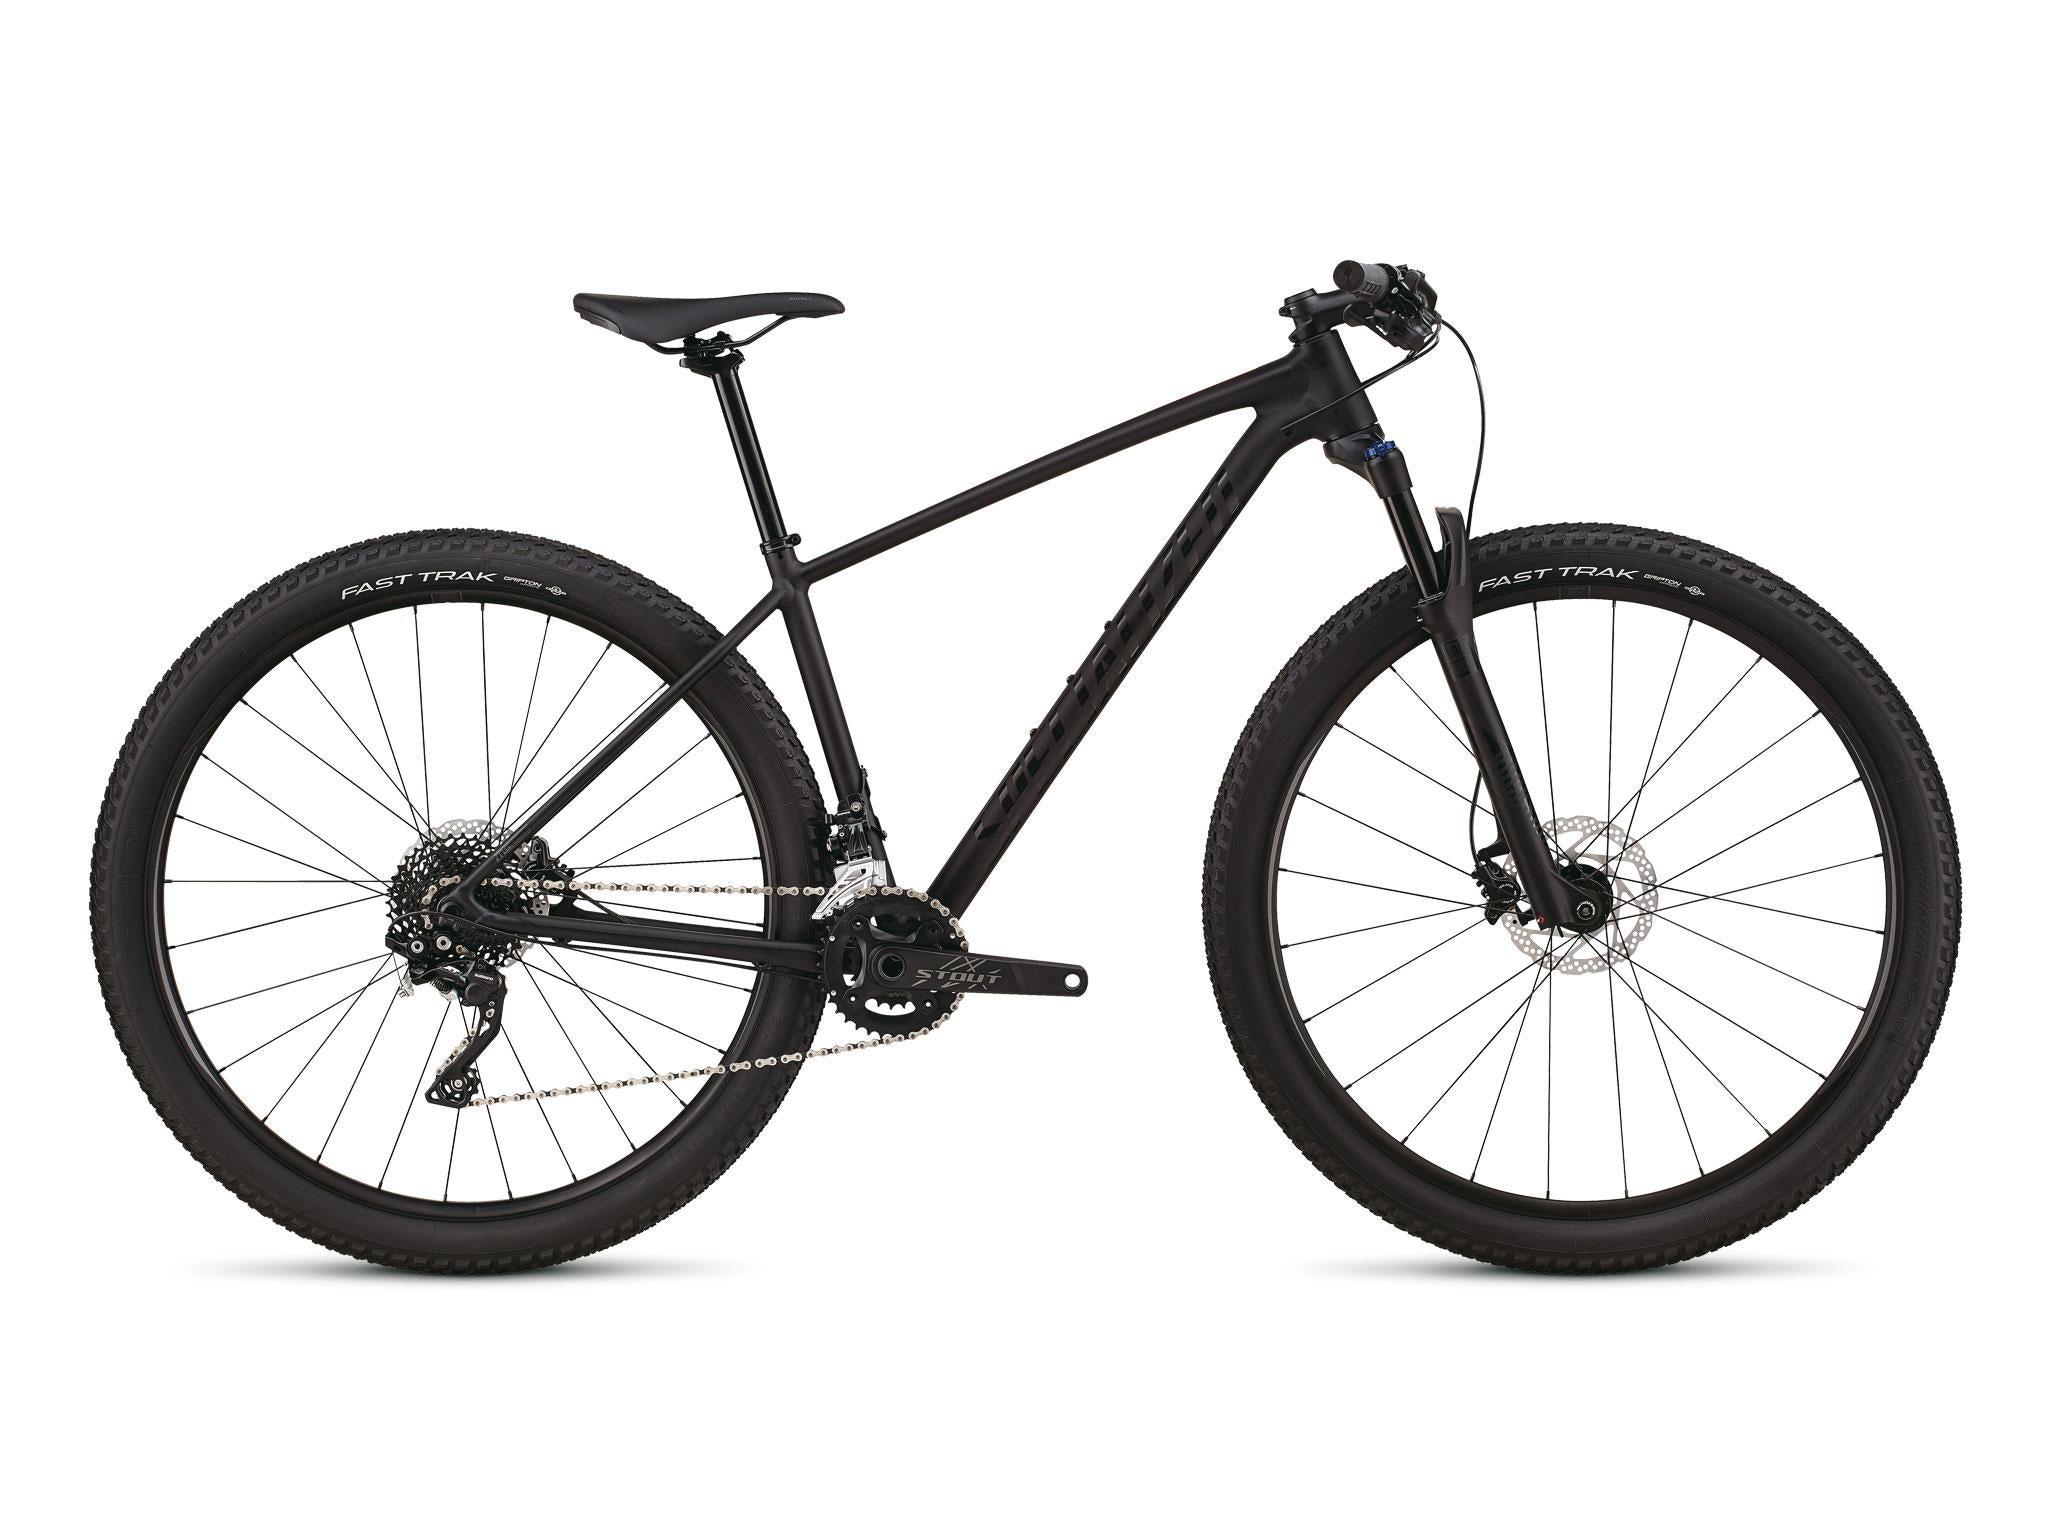 10 best trail bikes | The Independent